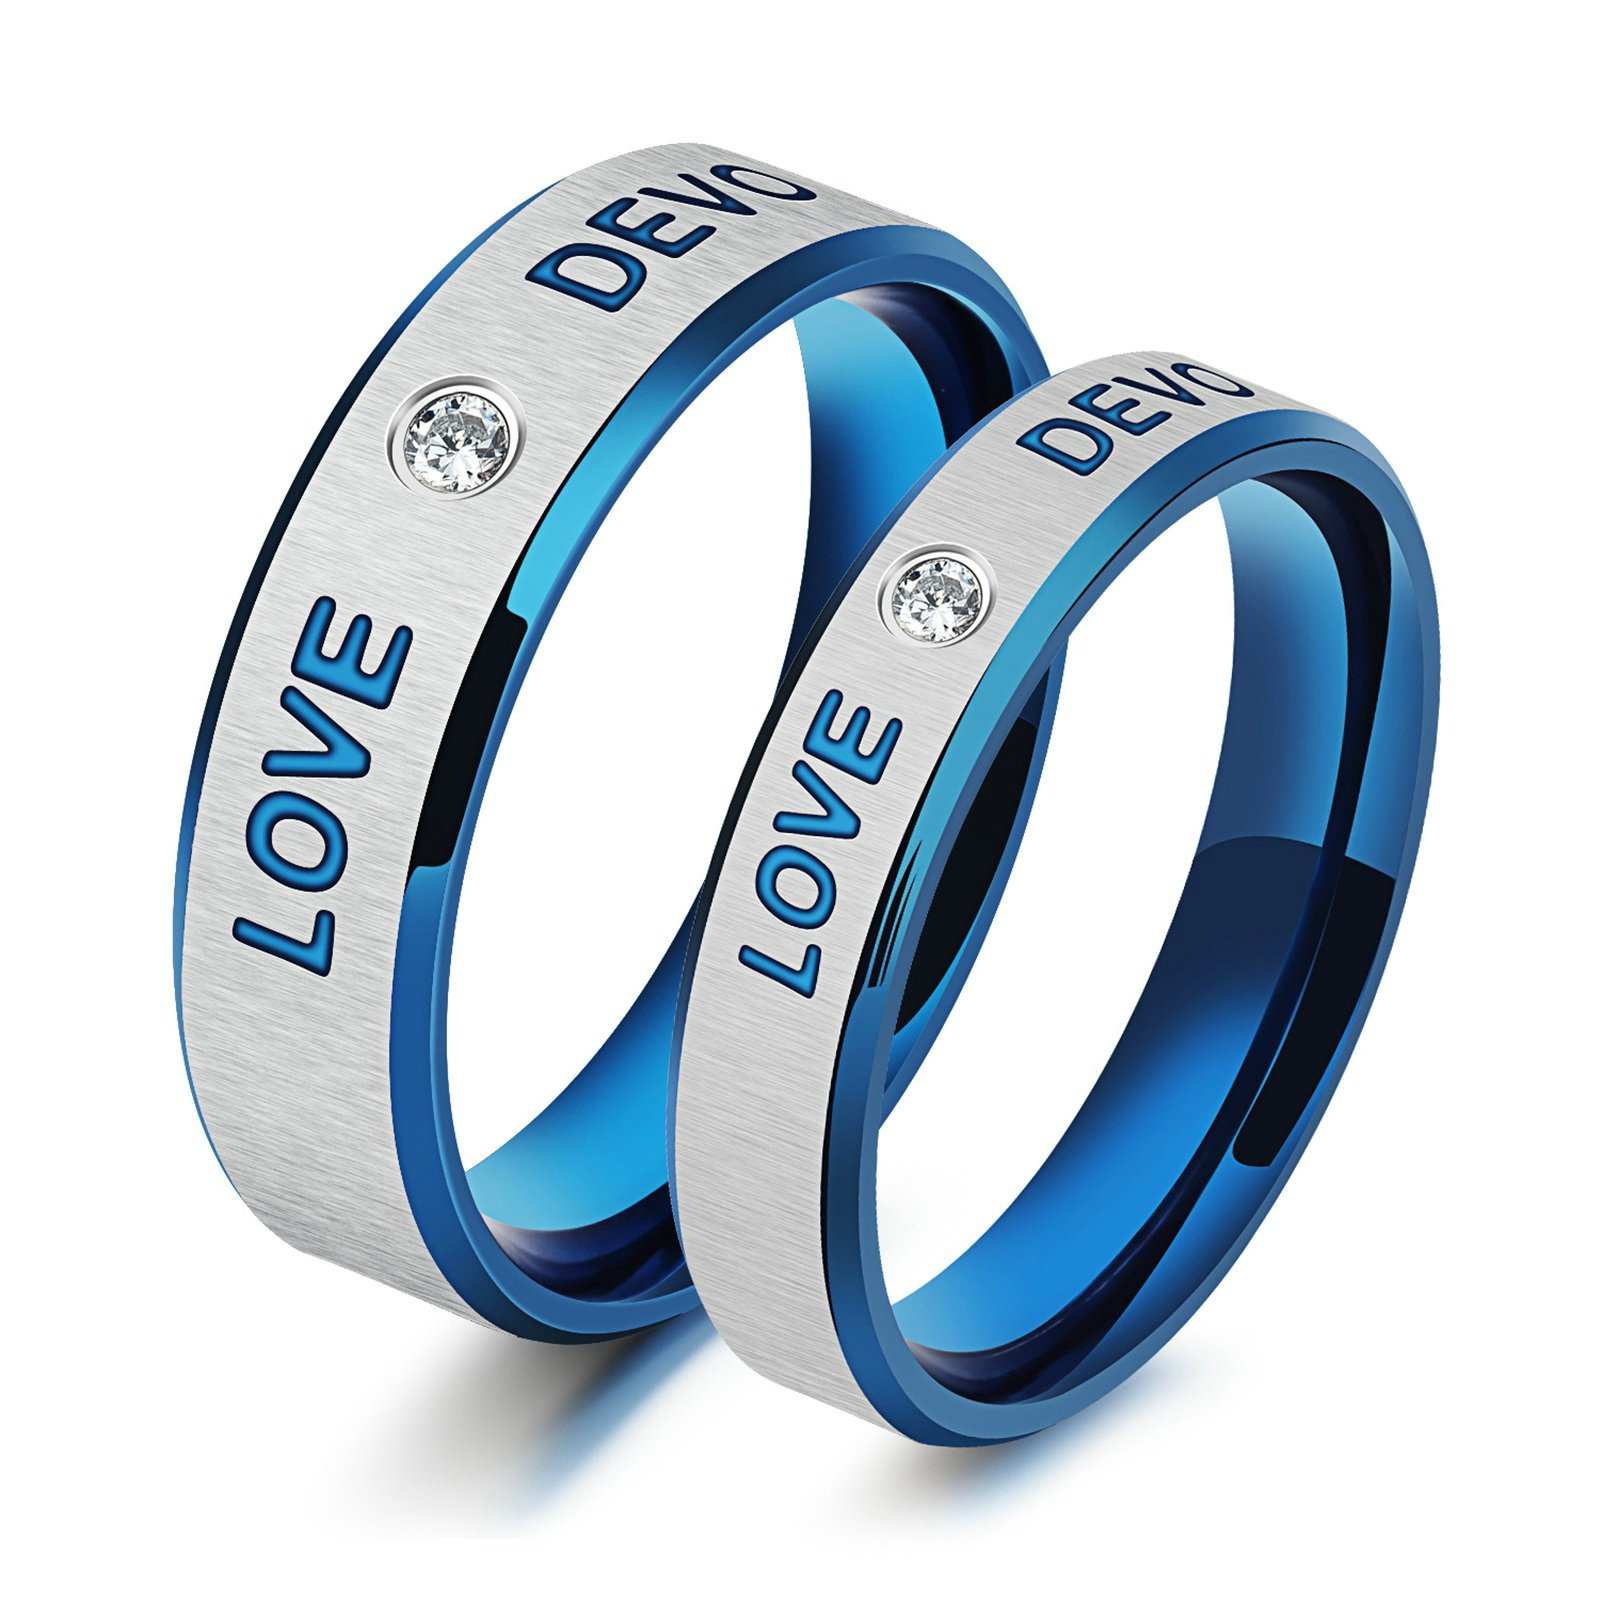 Aooaz Womens Ring Mens Ring Stainless Steel Couple Rings Wedding Band Blue Silver Love Devotion Cubic Zirconia Rings With Free Engraving Womens 7 & Mens 10 Novelty Jewelry Gift